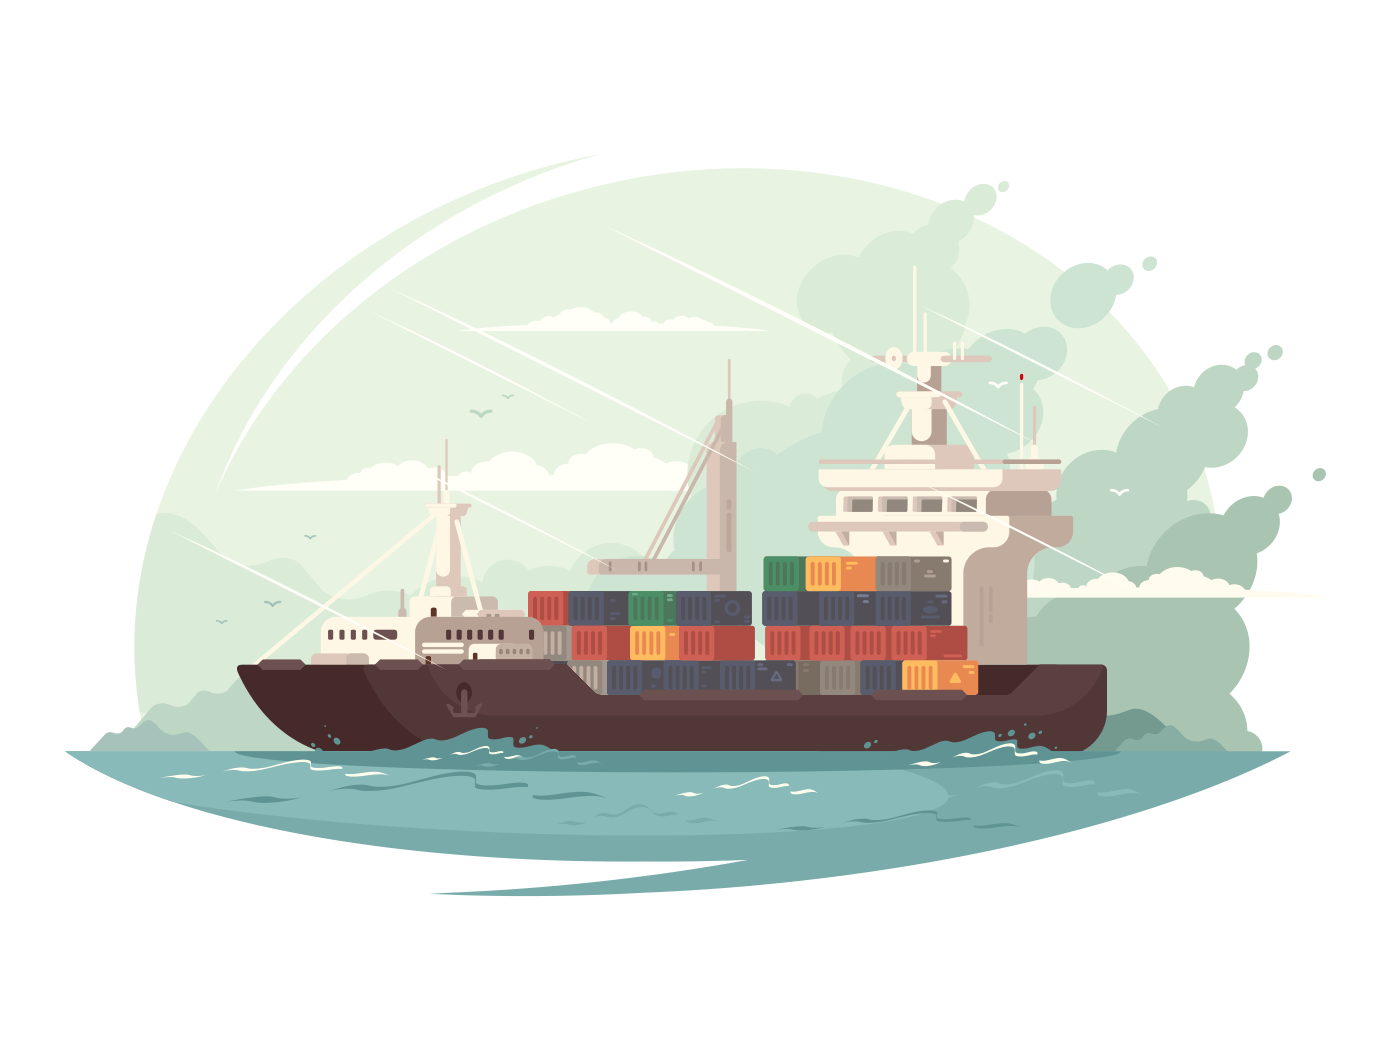 Container ship in sea illustration